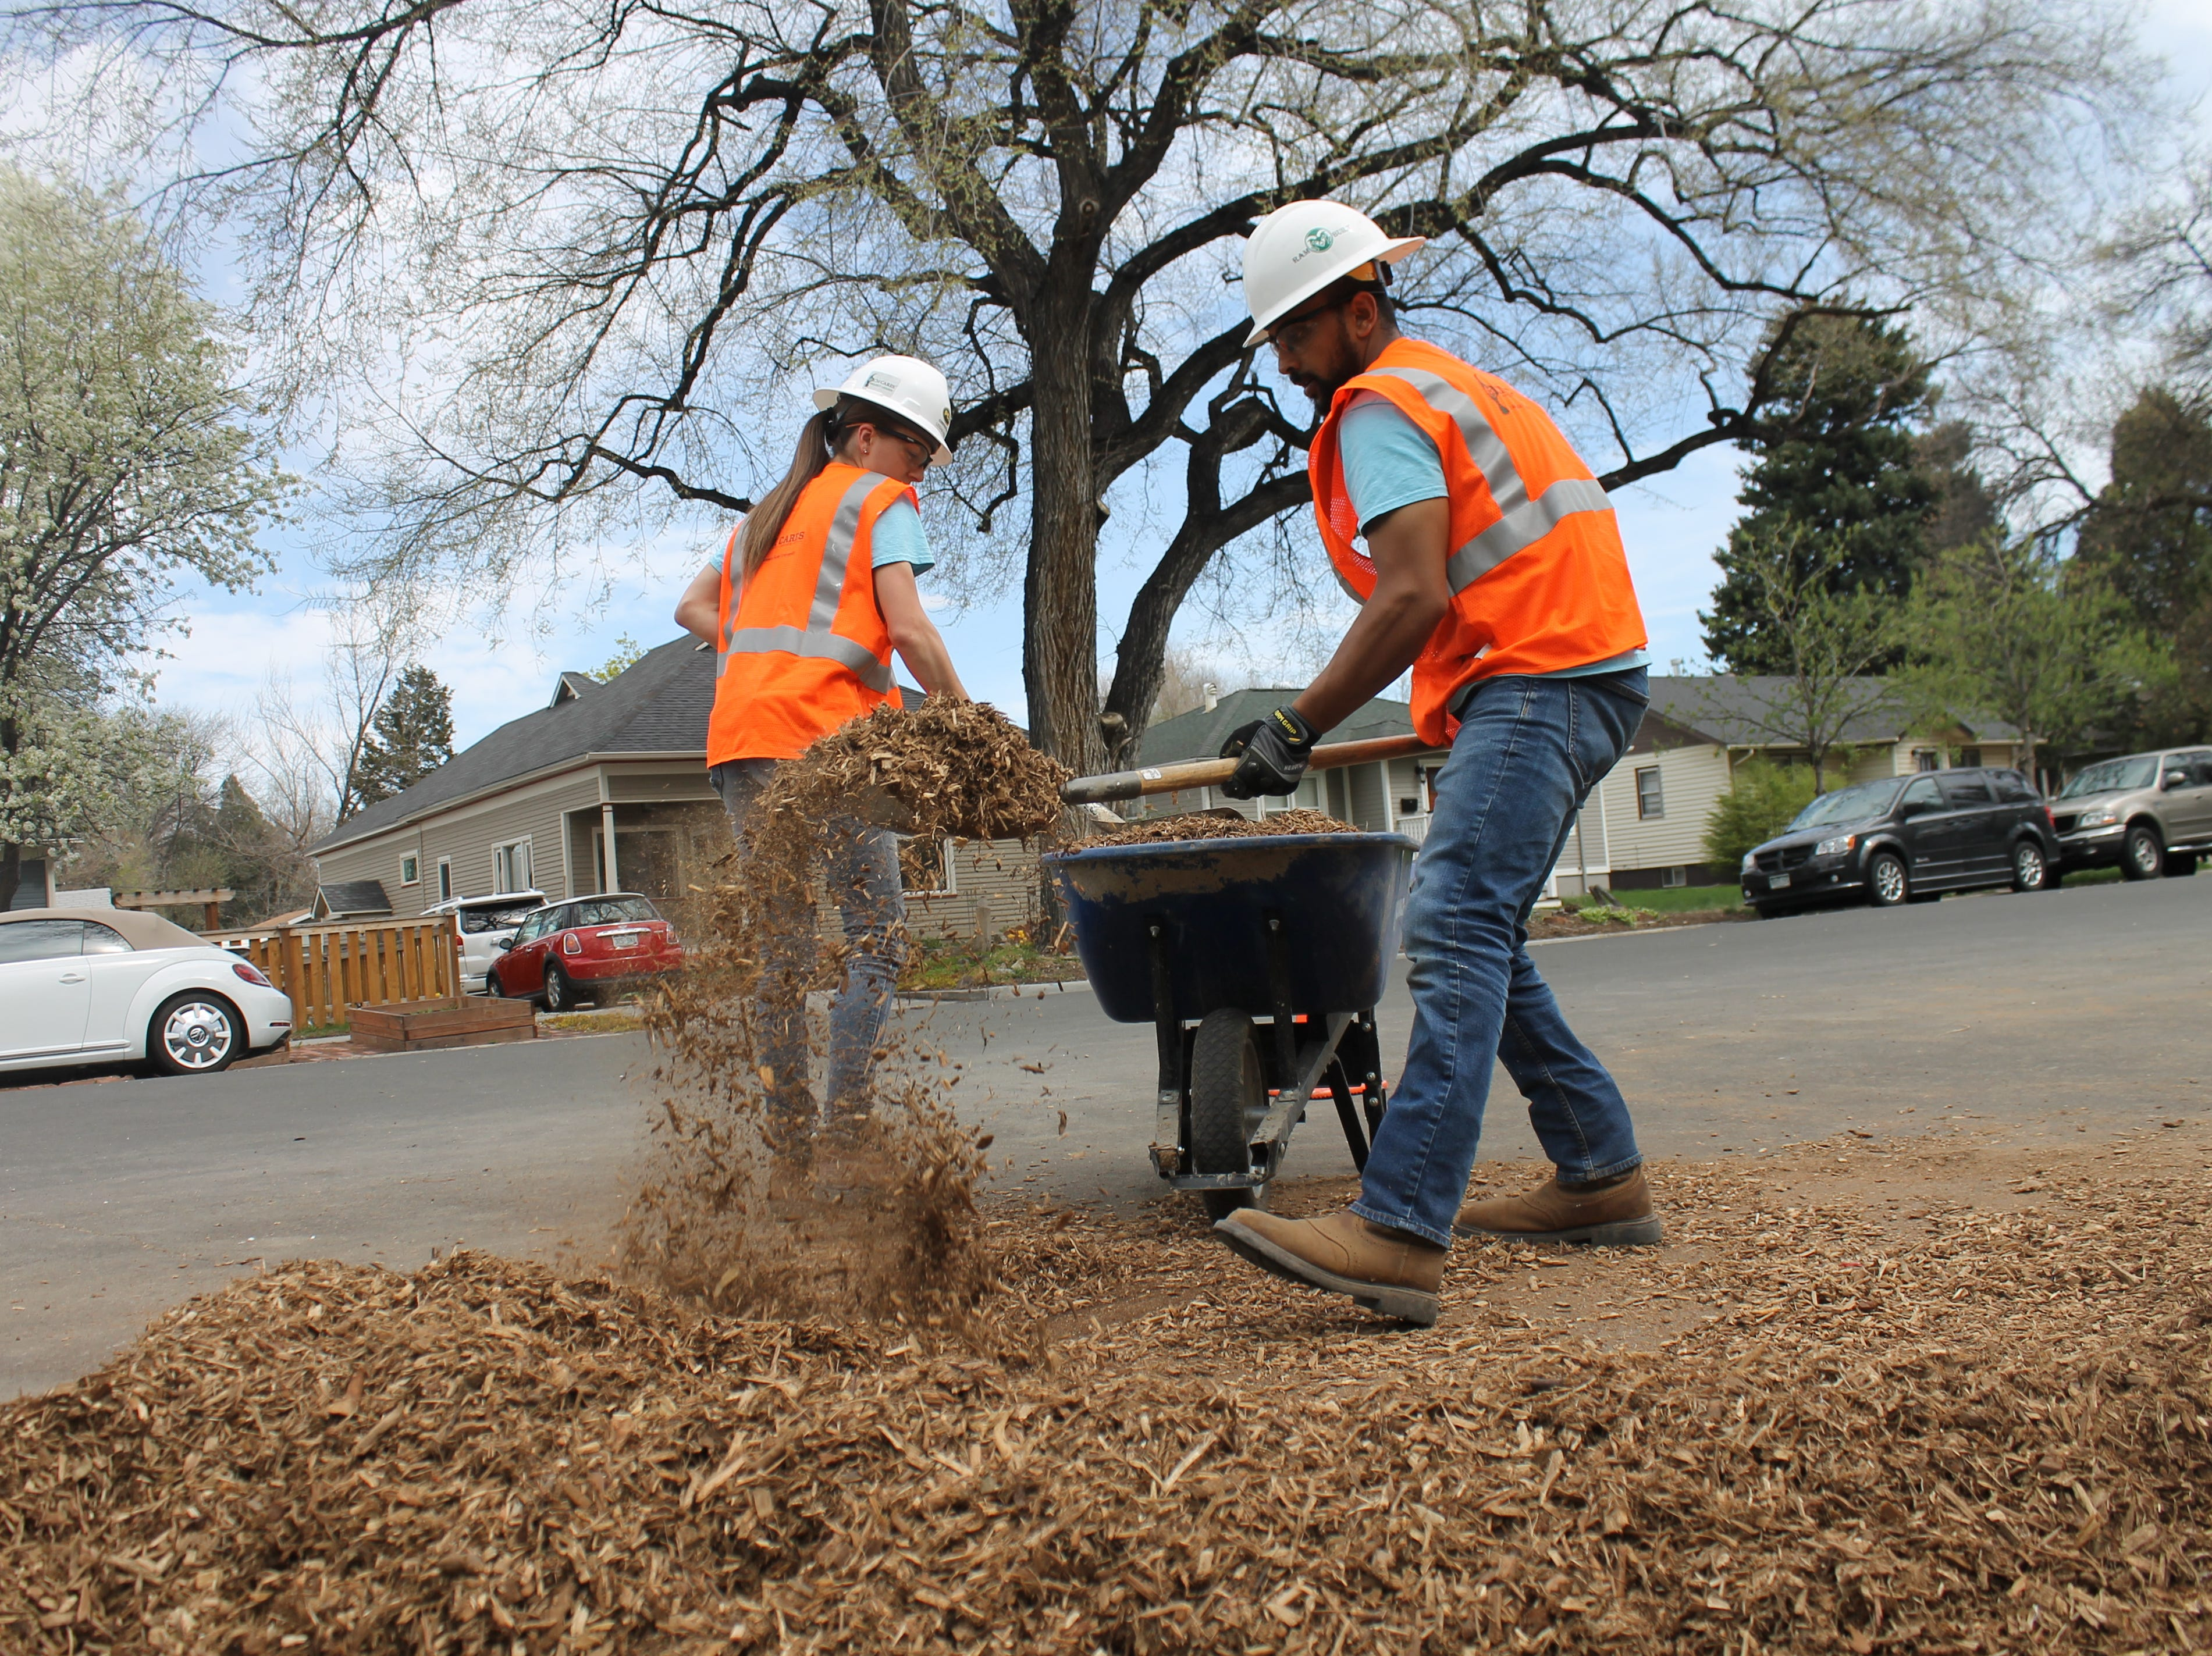 Leigha Huck, left, and Saleh Bawareth shovel mulch into a wheelbarrow Saturday, April 27, 2019. They're both construction management students at Colorado State University, working with Construction Management Cares for class. The program aims to make homes and nonprofits more accessible to folks with disabilities.